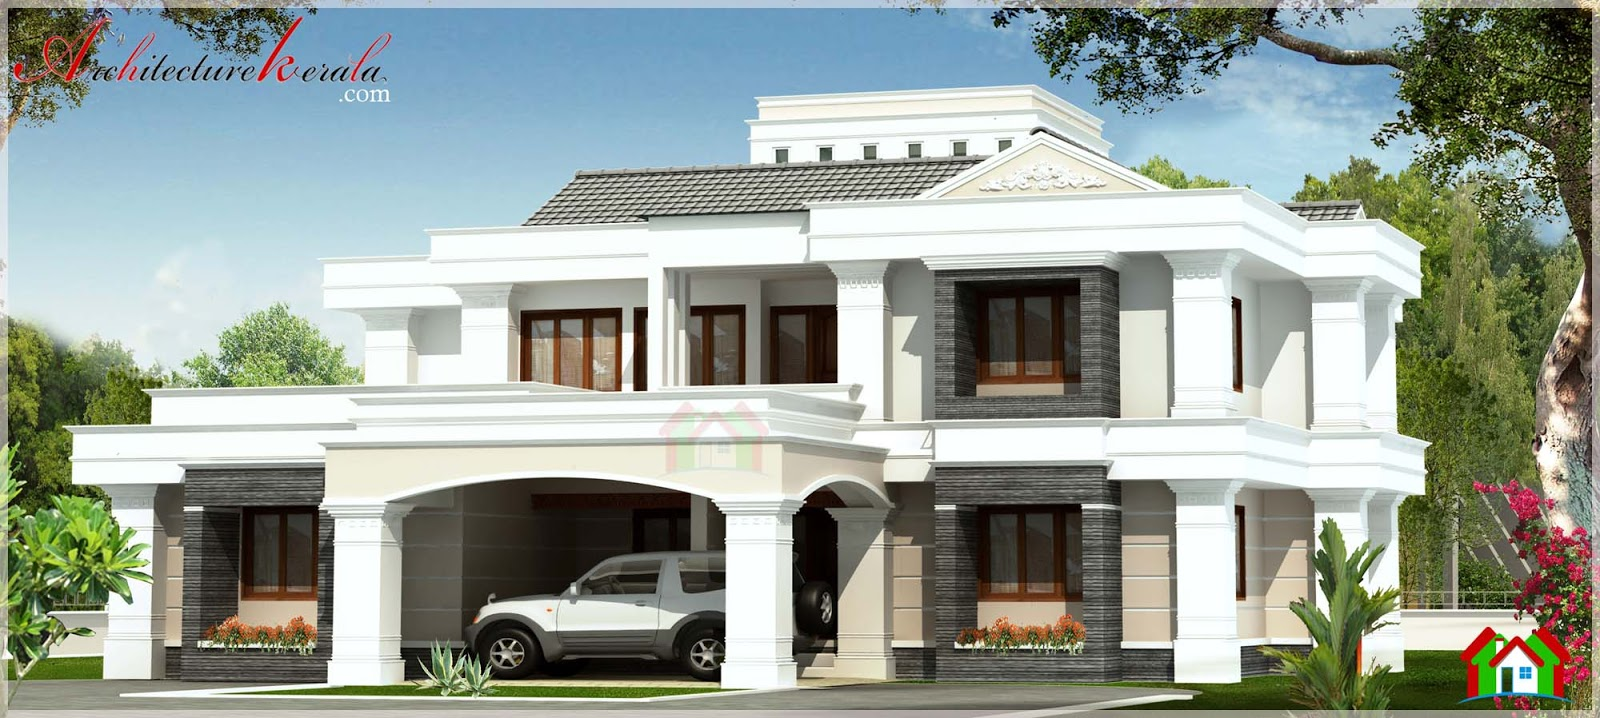 Contemporary style kerala house elevation architecture for 4 bedroom house plans kerala style architect